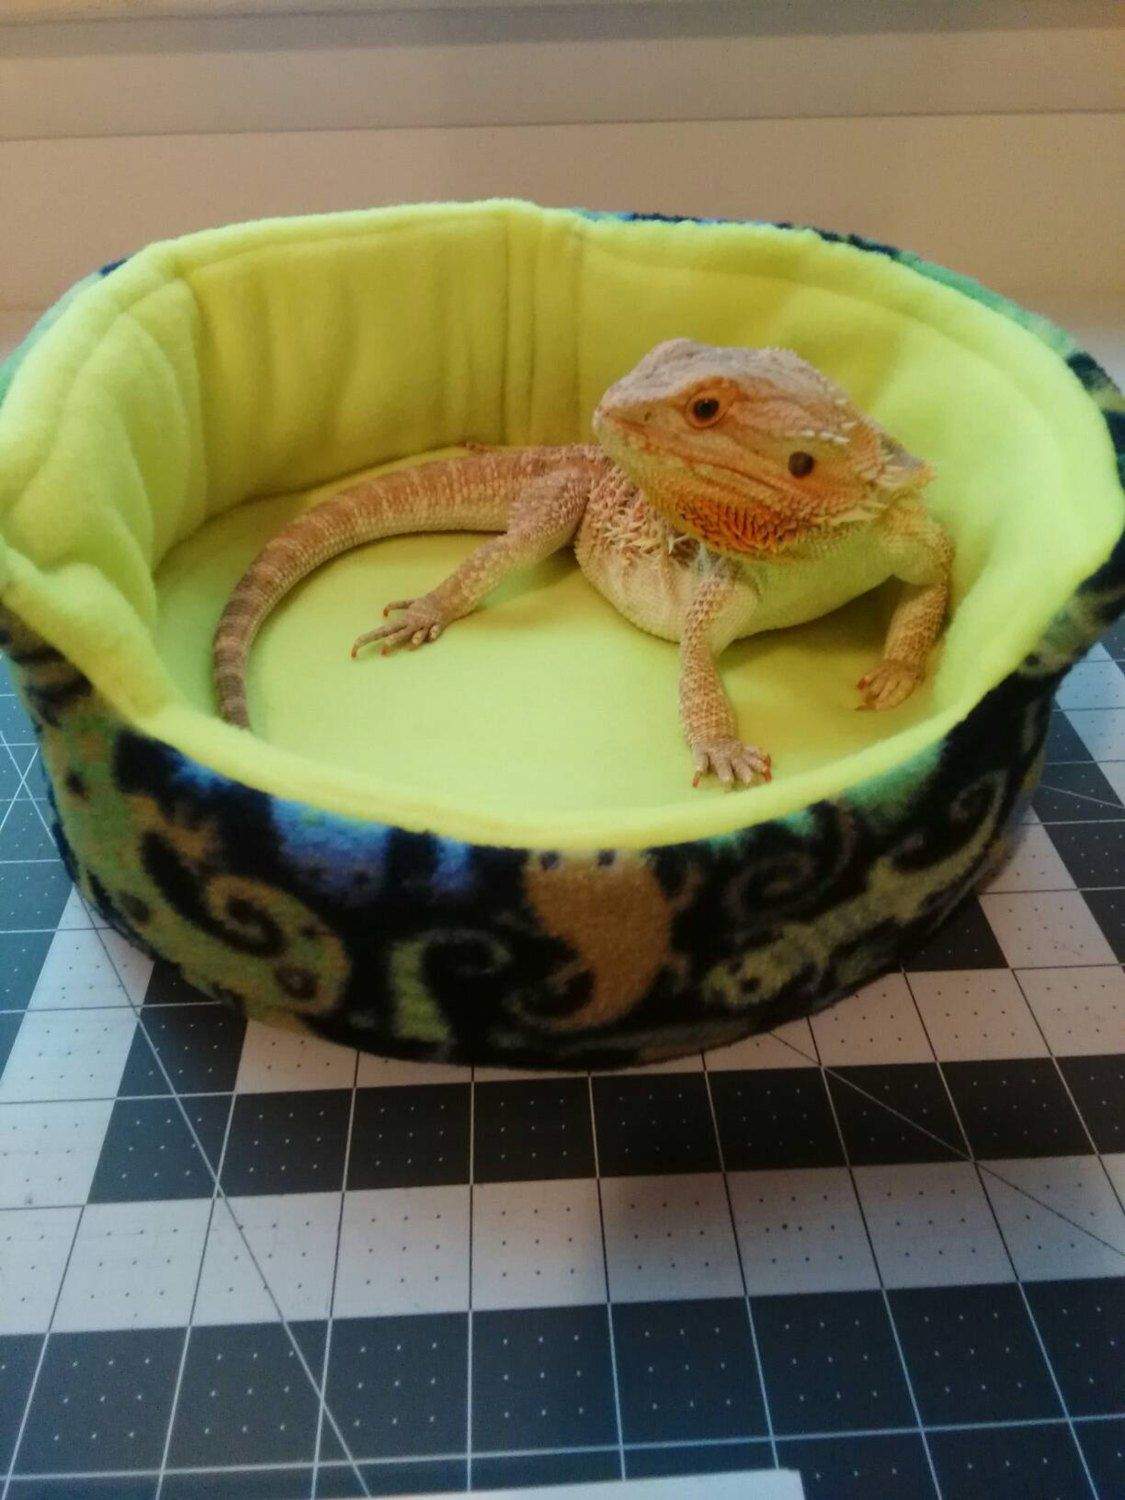 Pin by Caryln Little on Dragon in 2020 Bearded dragon